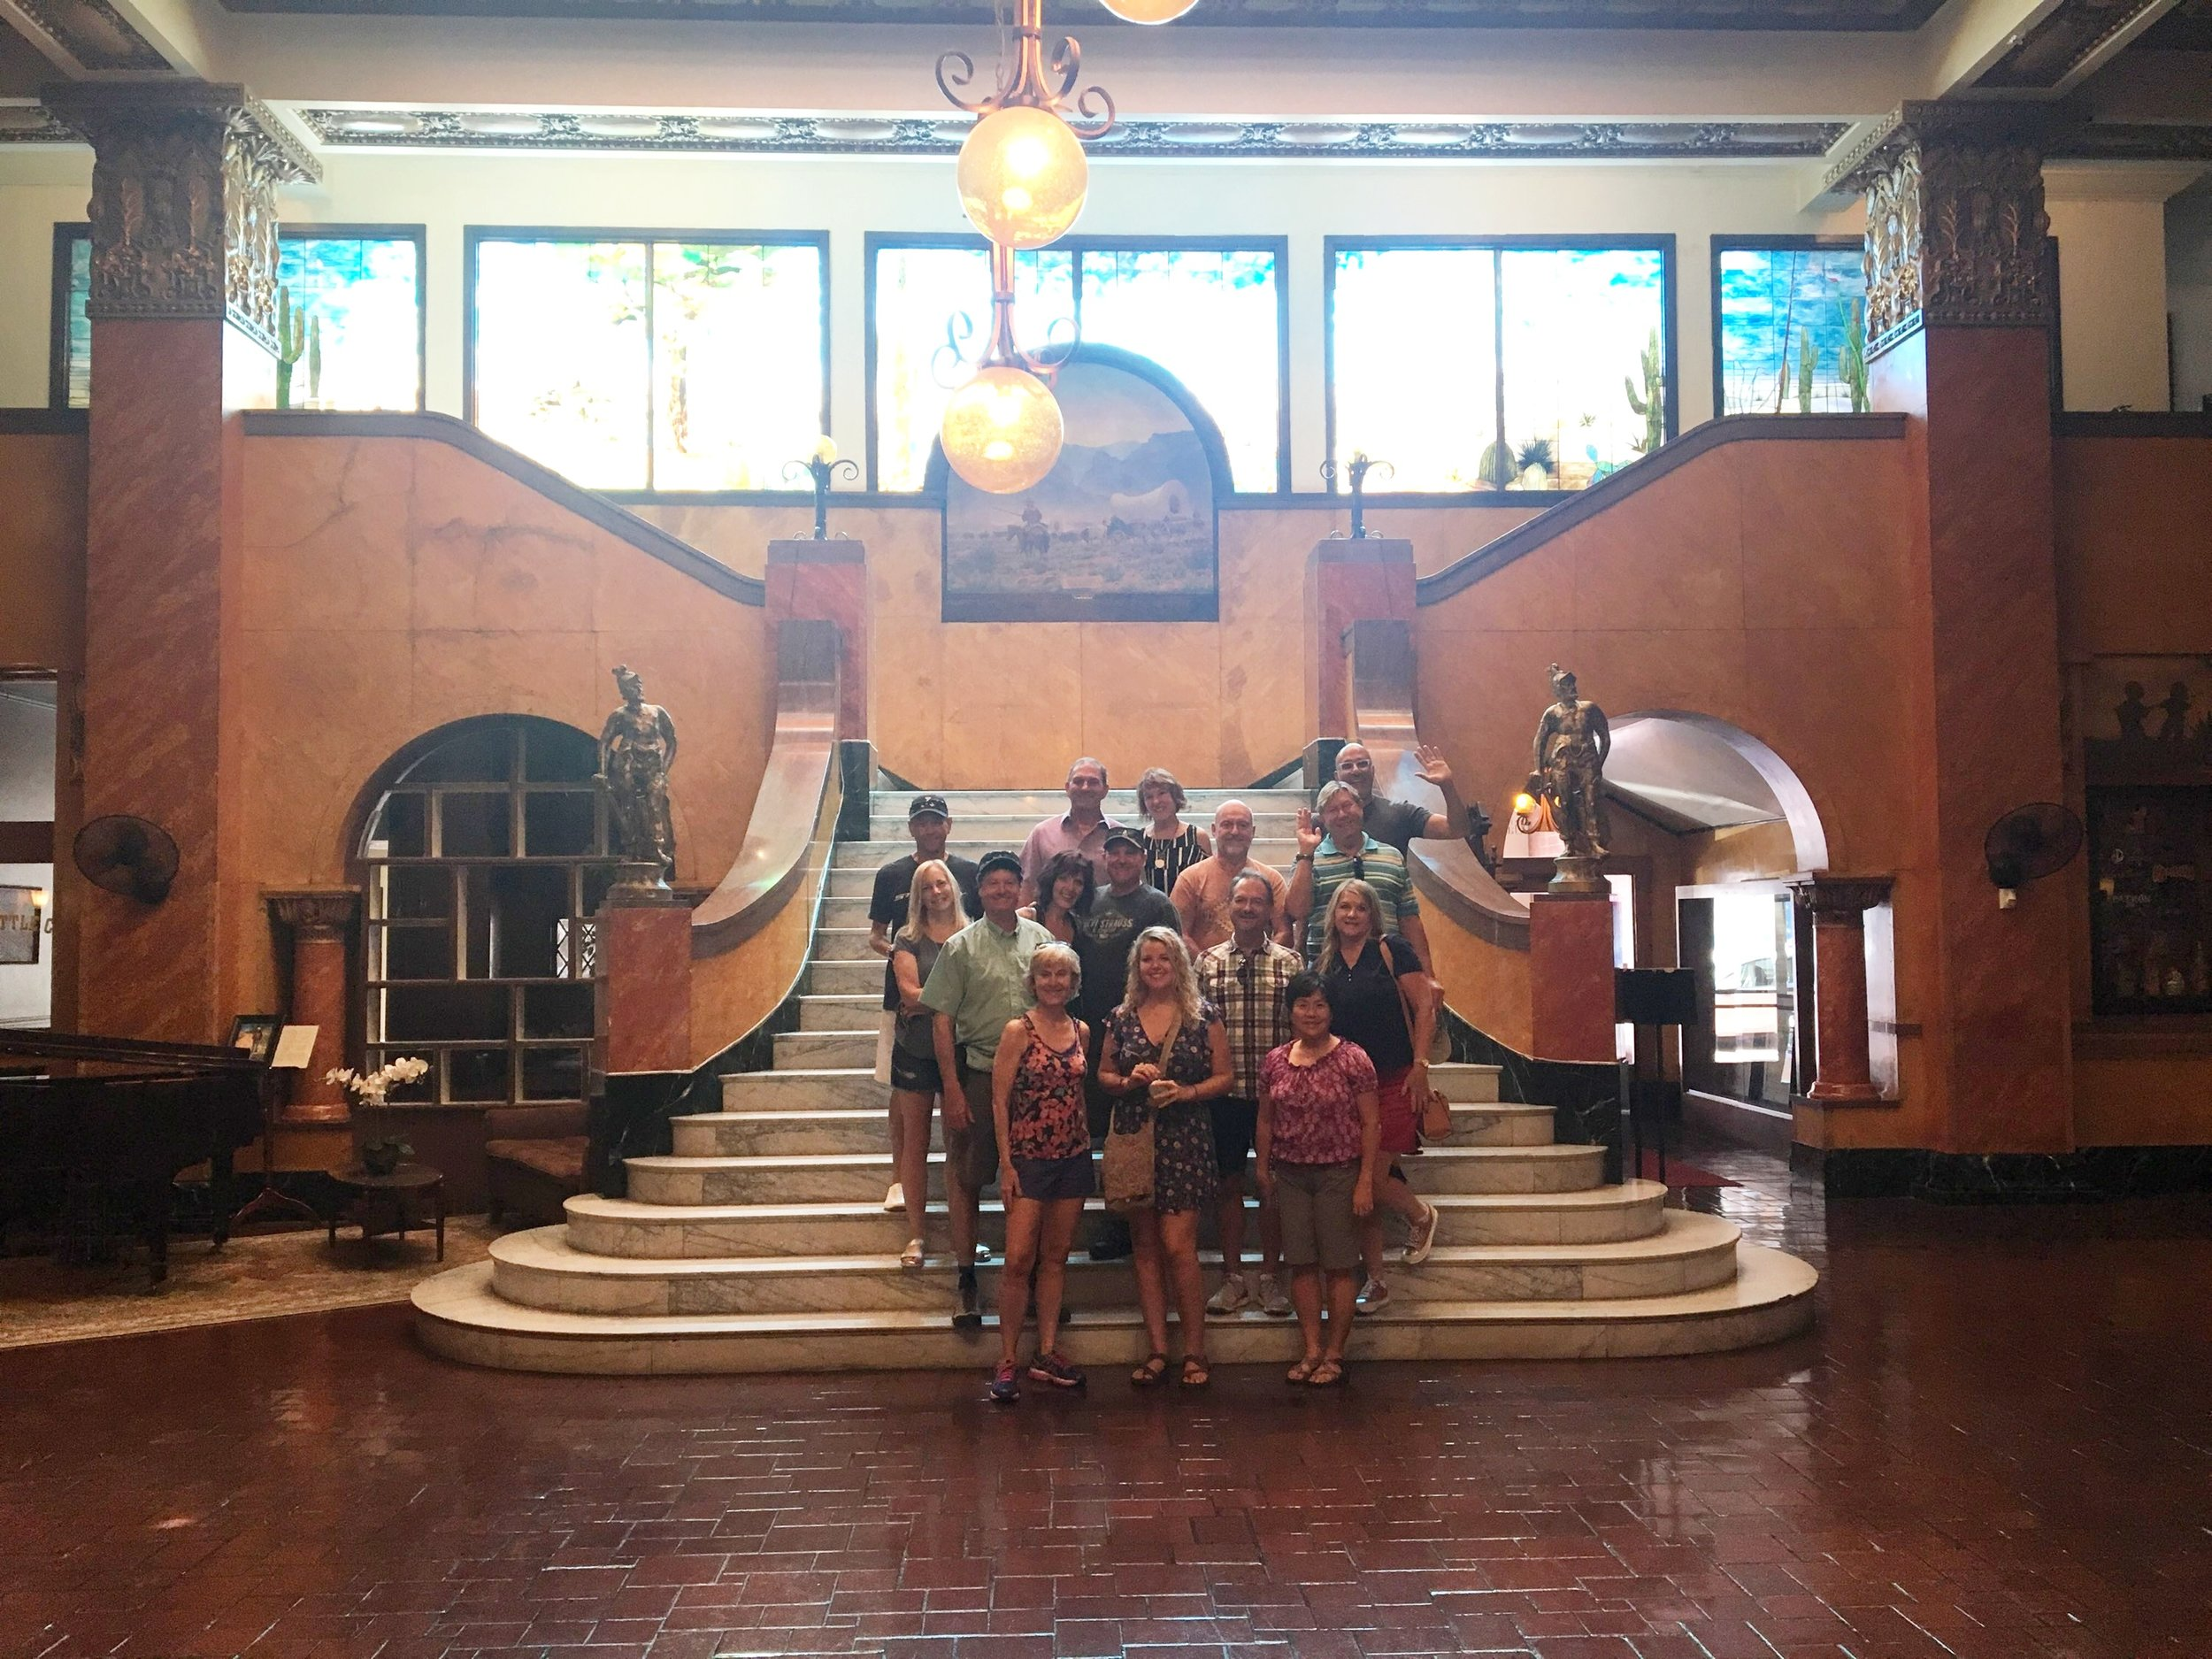 Our WeekendZona group from our trip to Douglas, Arizona, in July 2018.